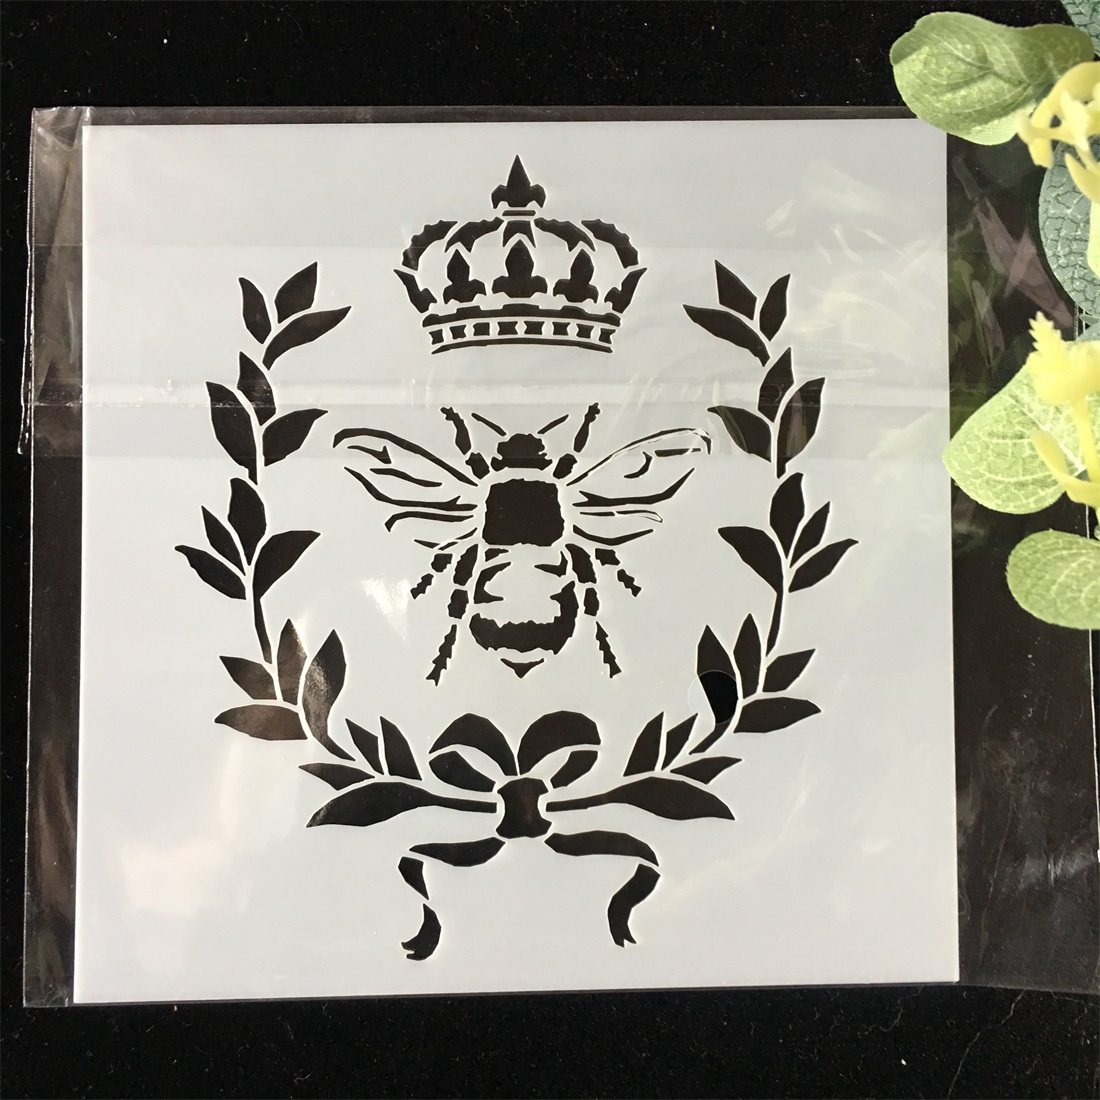 1Pcs Bee Crown DIY Layering Stencils Wall Painting Scrapbook Coloring Embossing Album Decorative Card Template